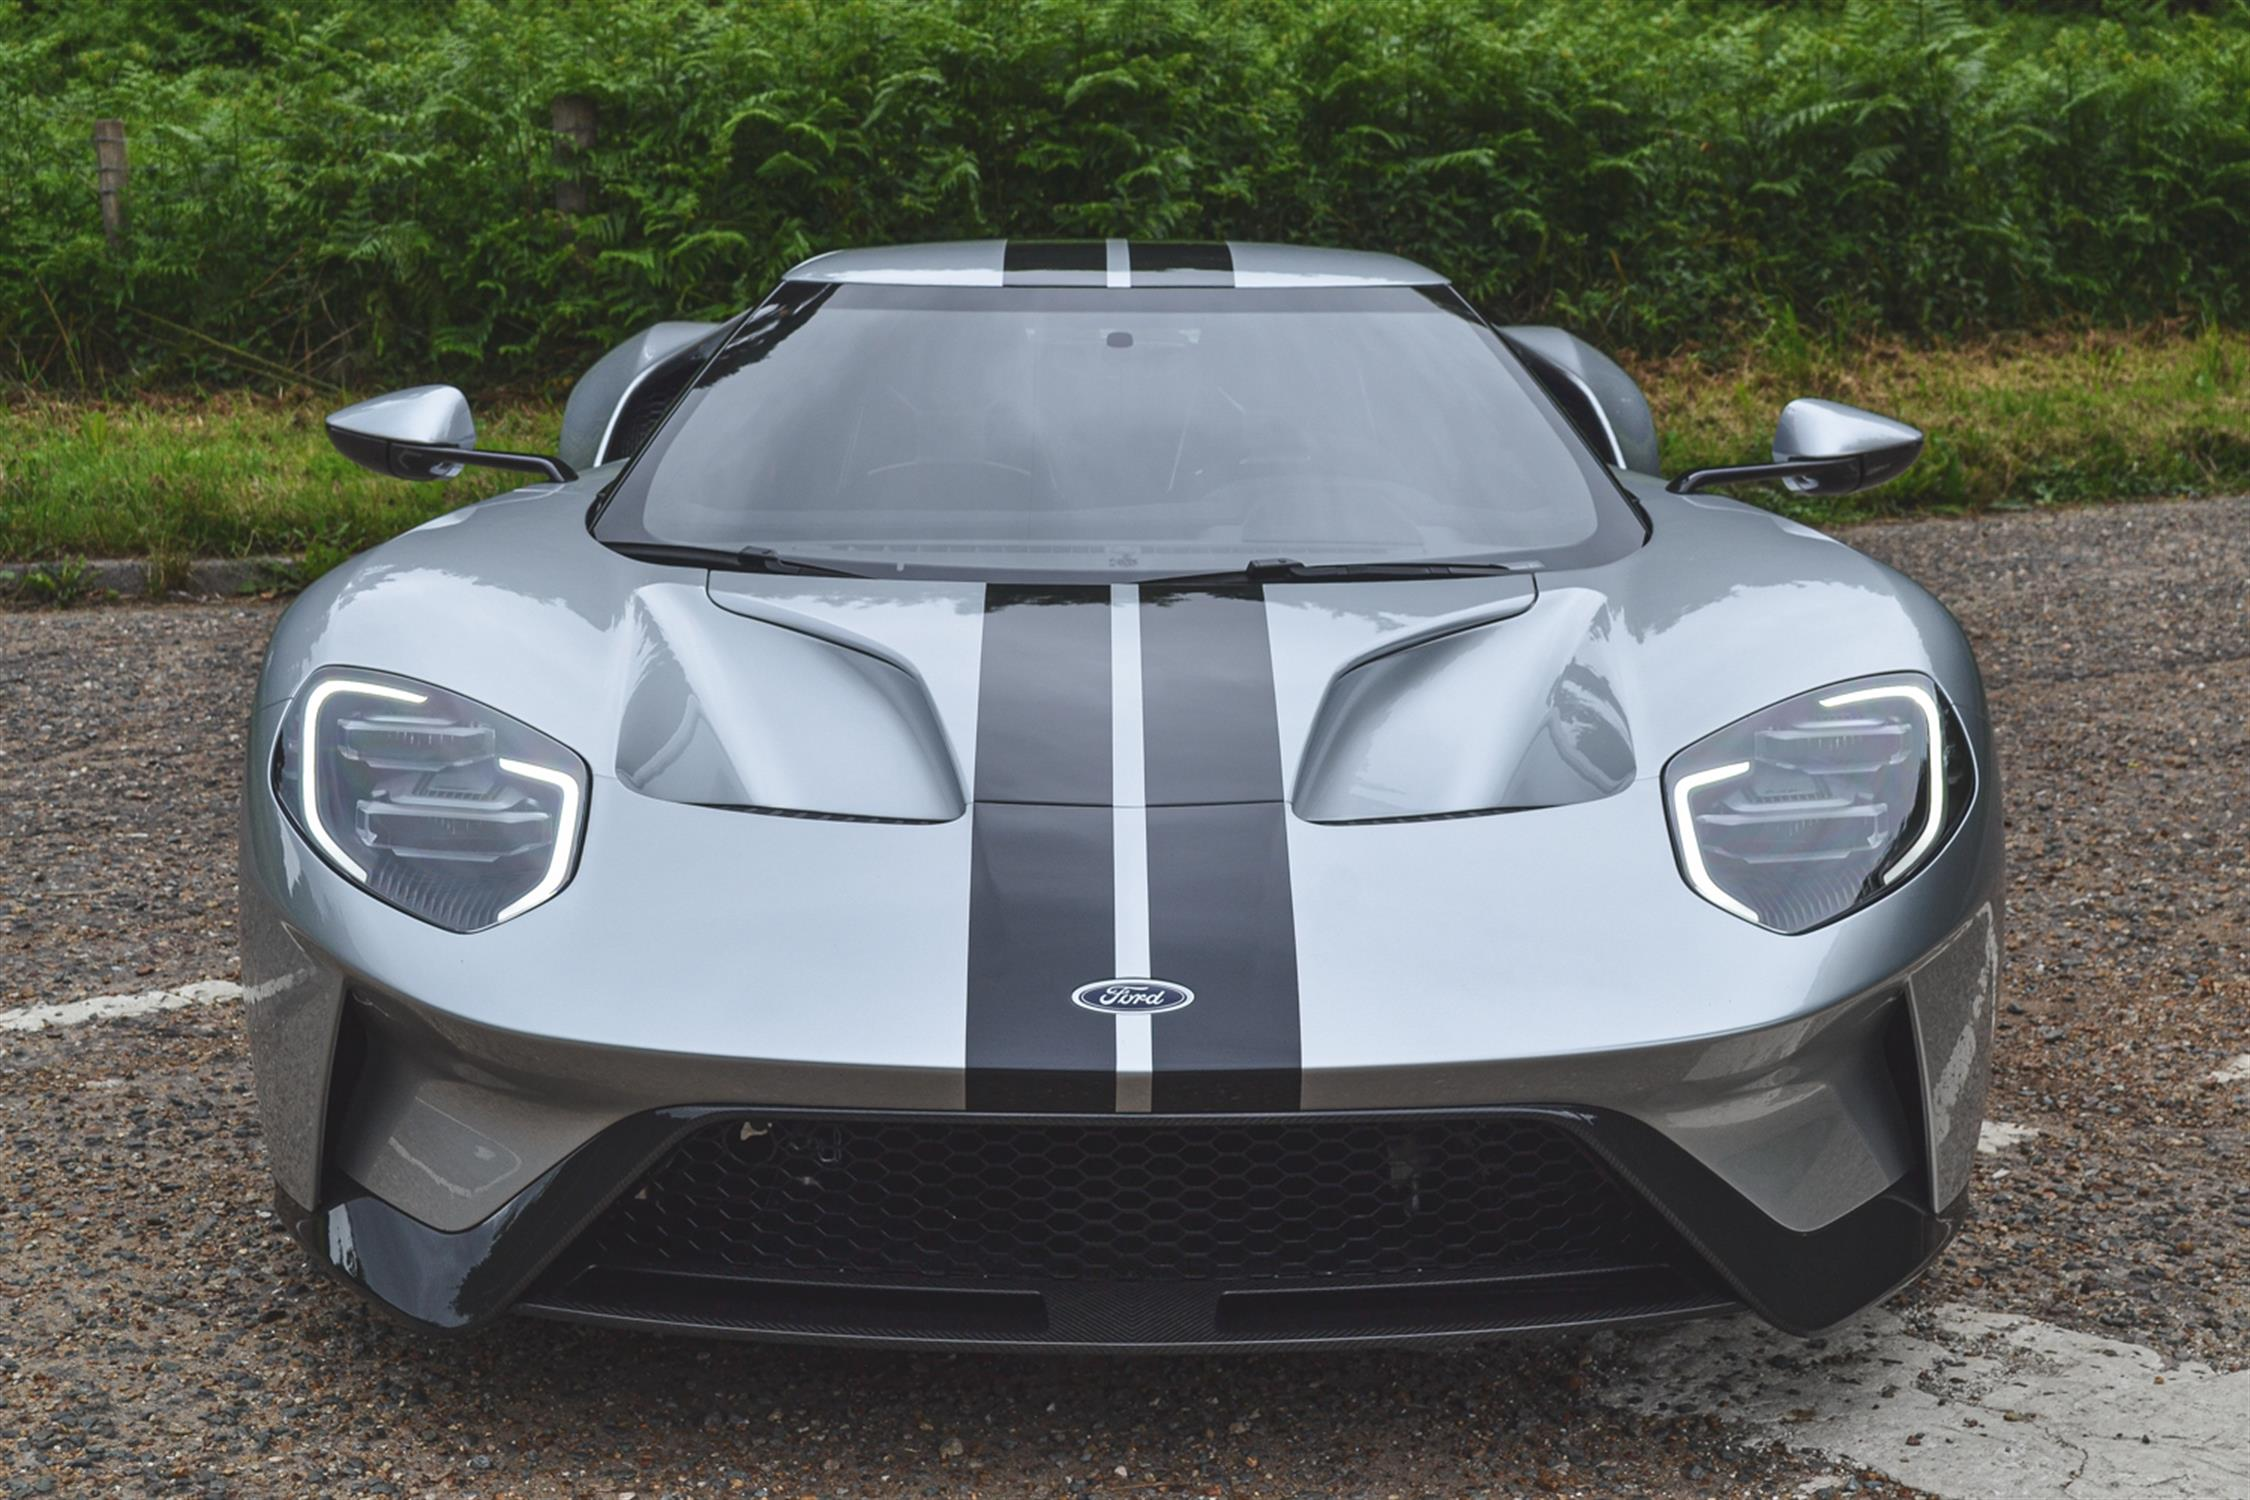 2018 Ford GT - Image 3 of 20